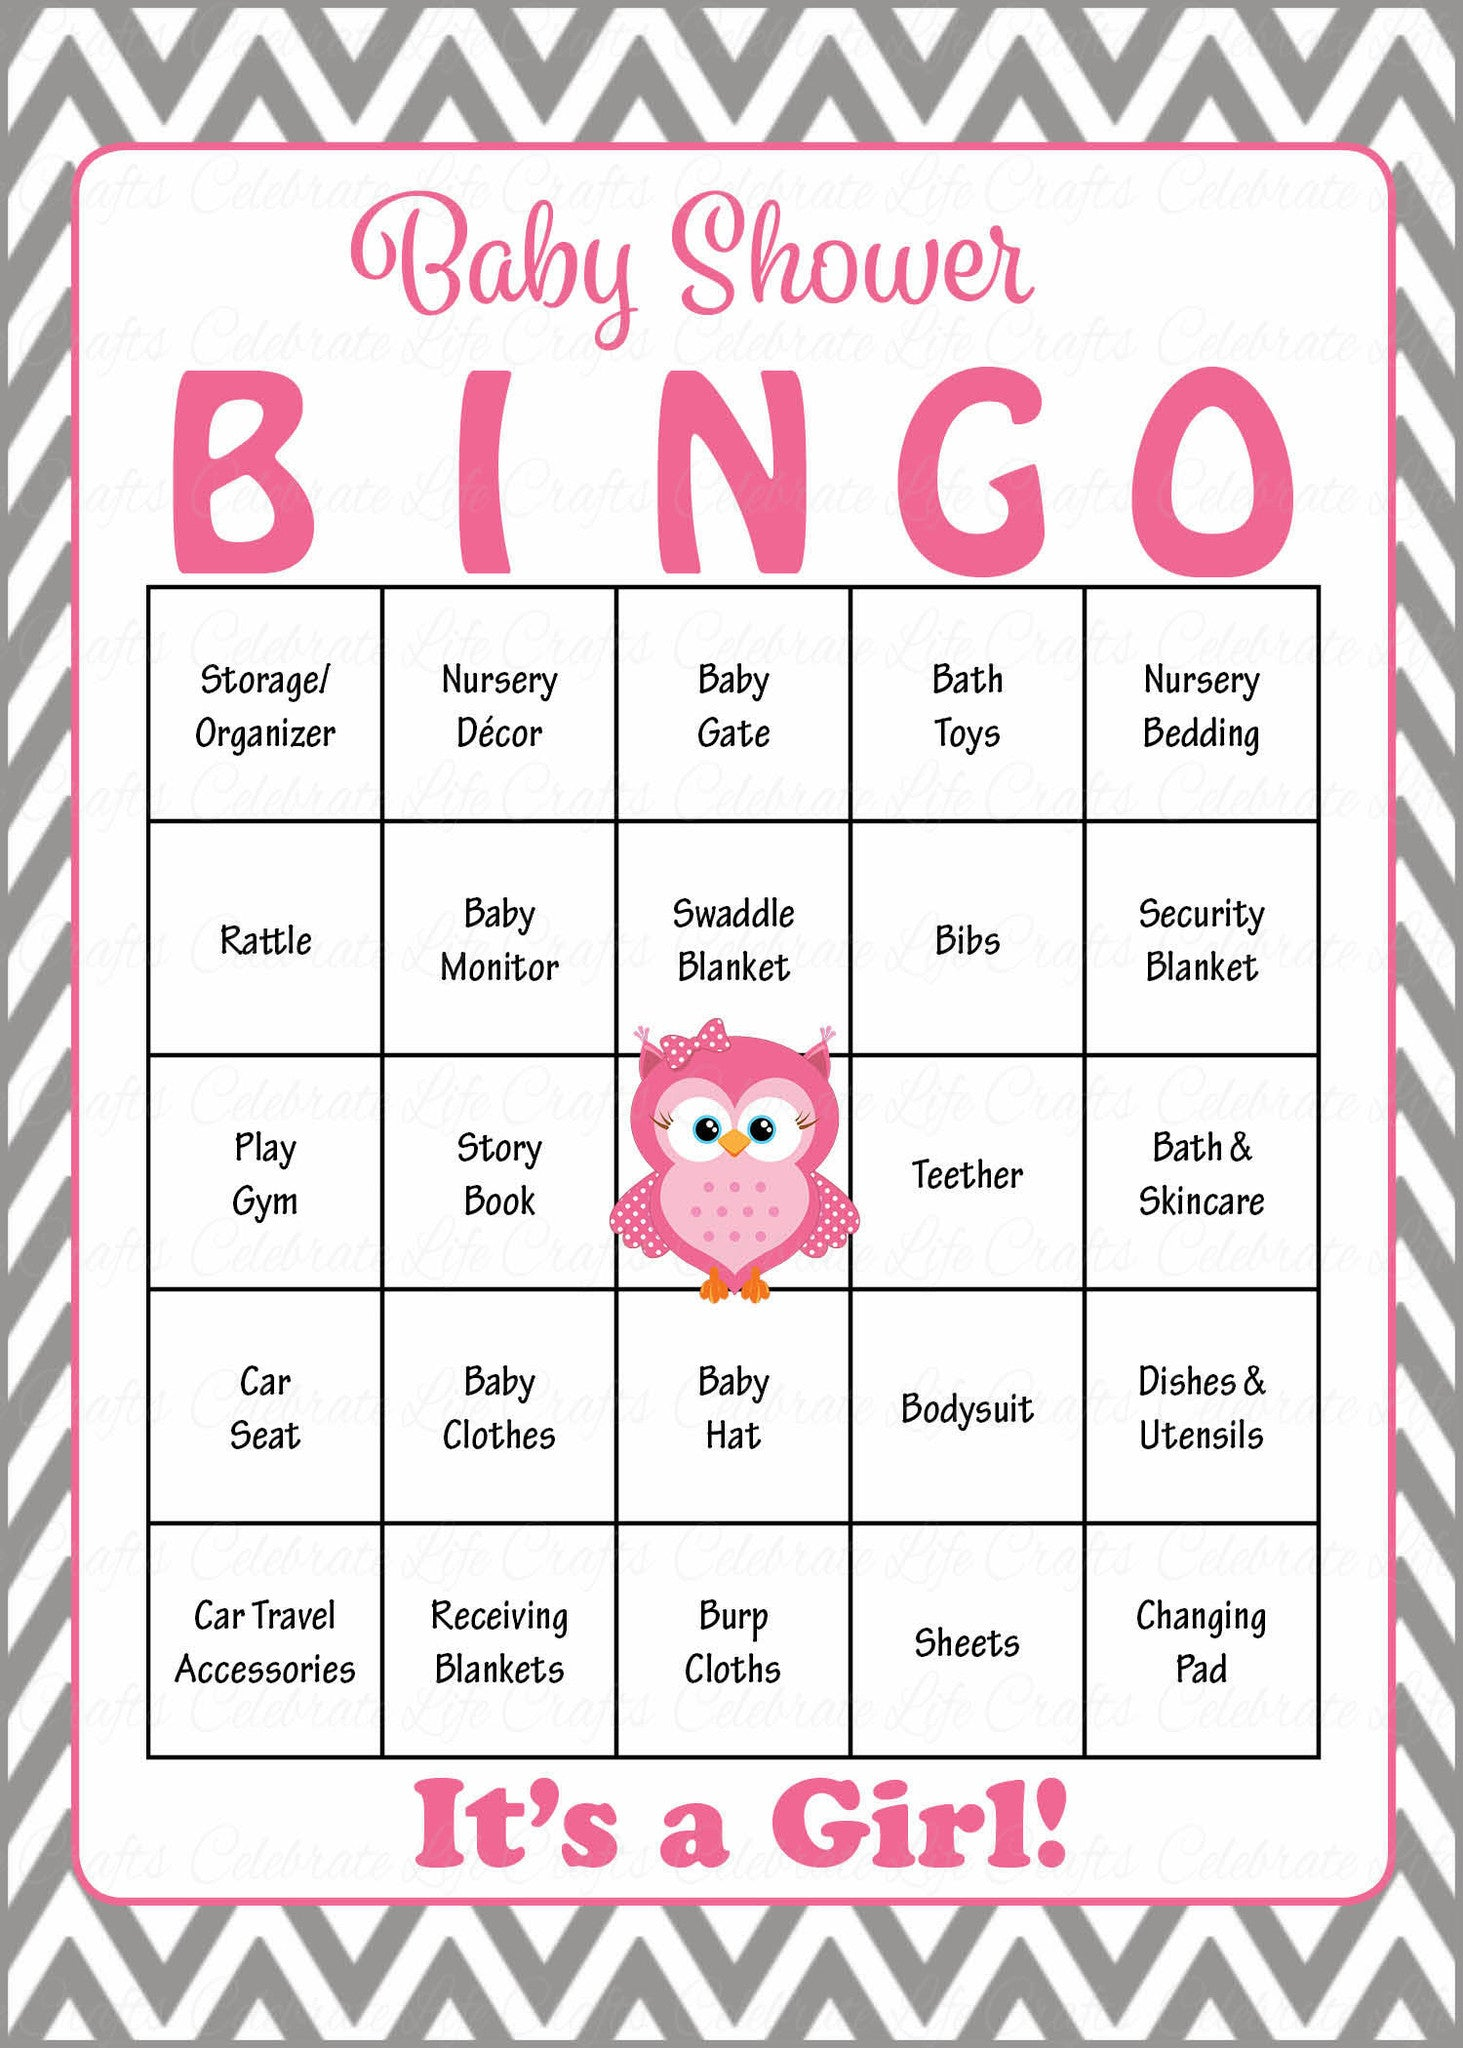 image relating to Baby Shower Bingo Cards Printable named Owl Child Bingo Playing cards - Printable Down load - Prefilled - Kid Shower Match for Woman - Red Grey